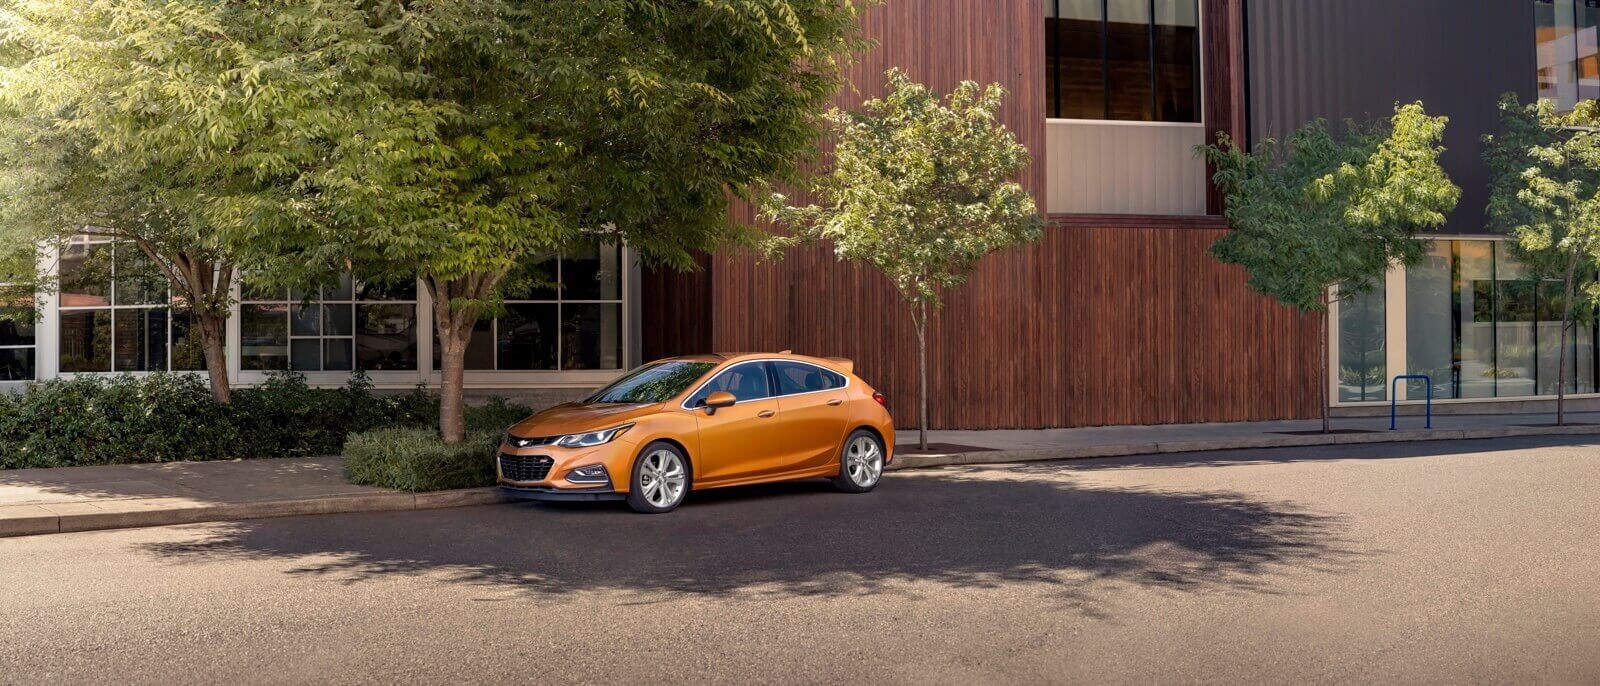 2017 Chevrolet Cruze Hatchback orange exterior